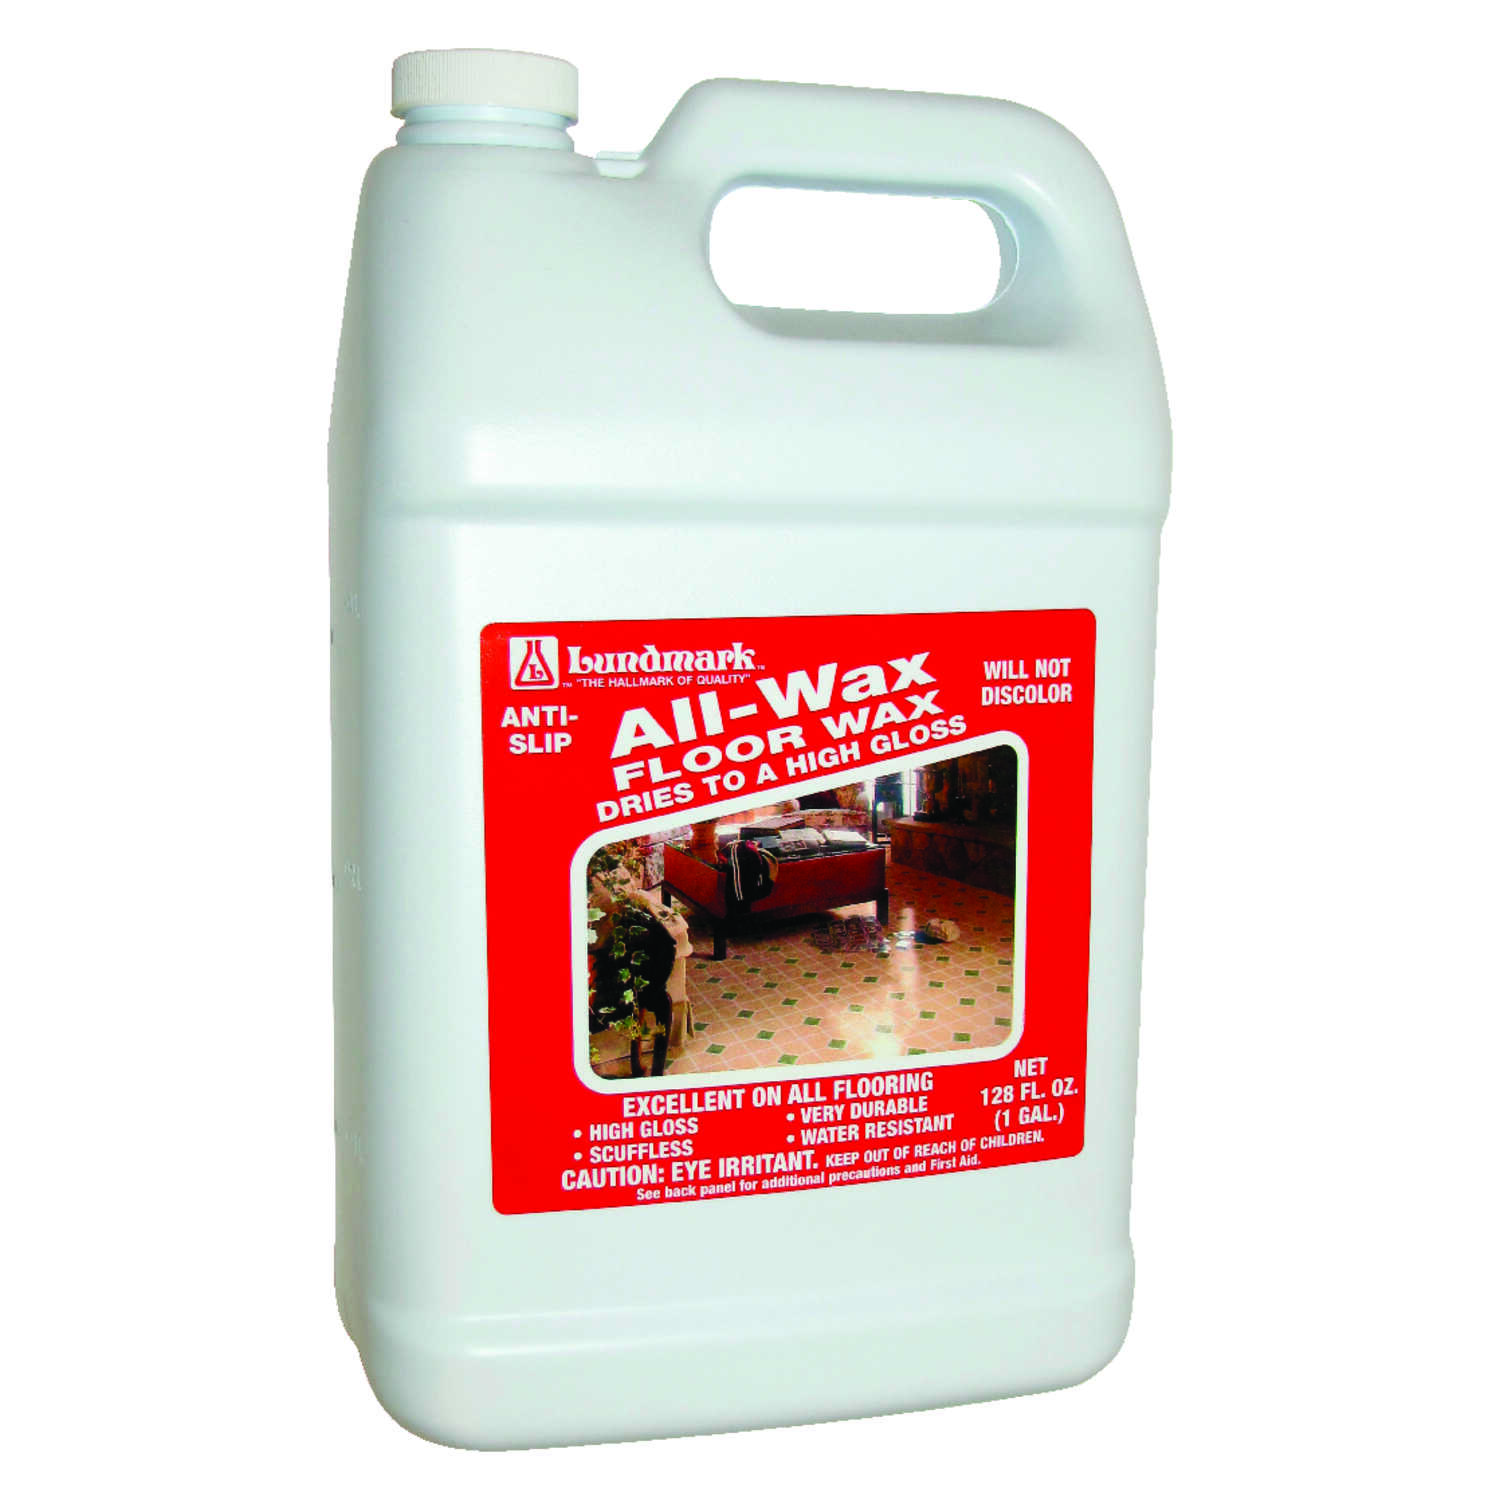 Lundmark  All Wax  High Gloss  Anti-Slip Floor Wax  Liquid  1 gal.